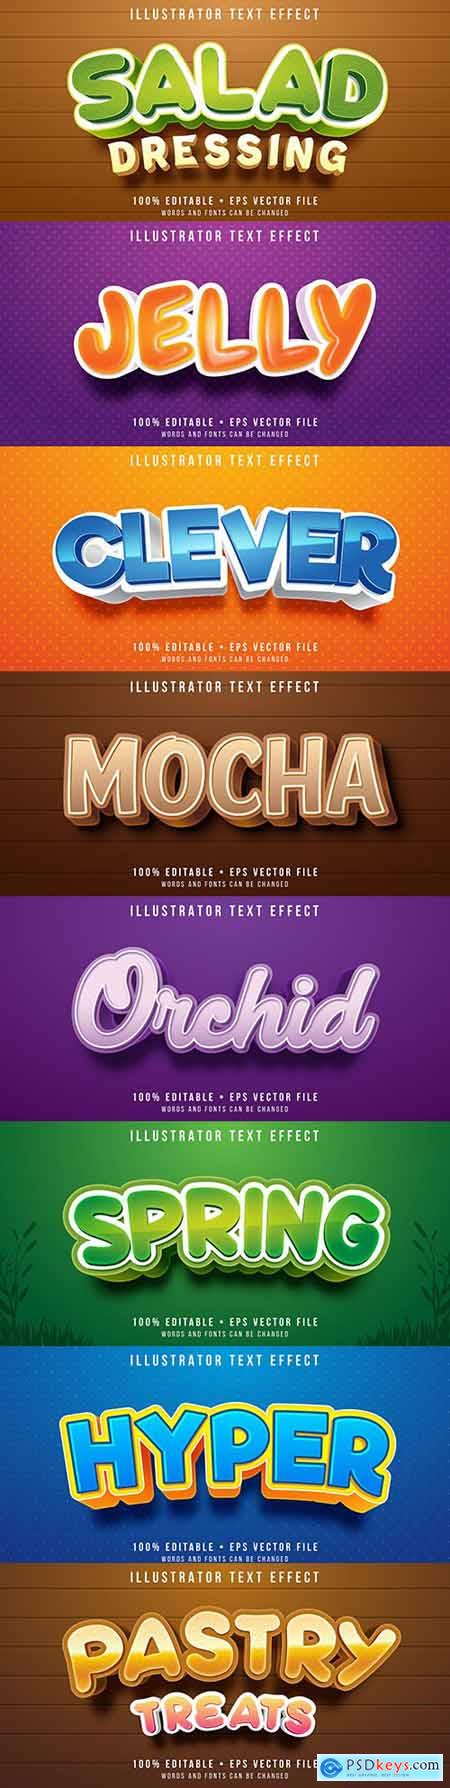 Editable font effect text collection illustration design 74